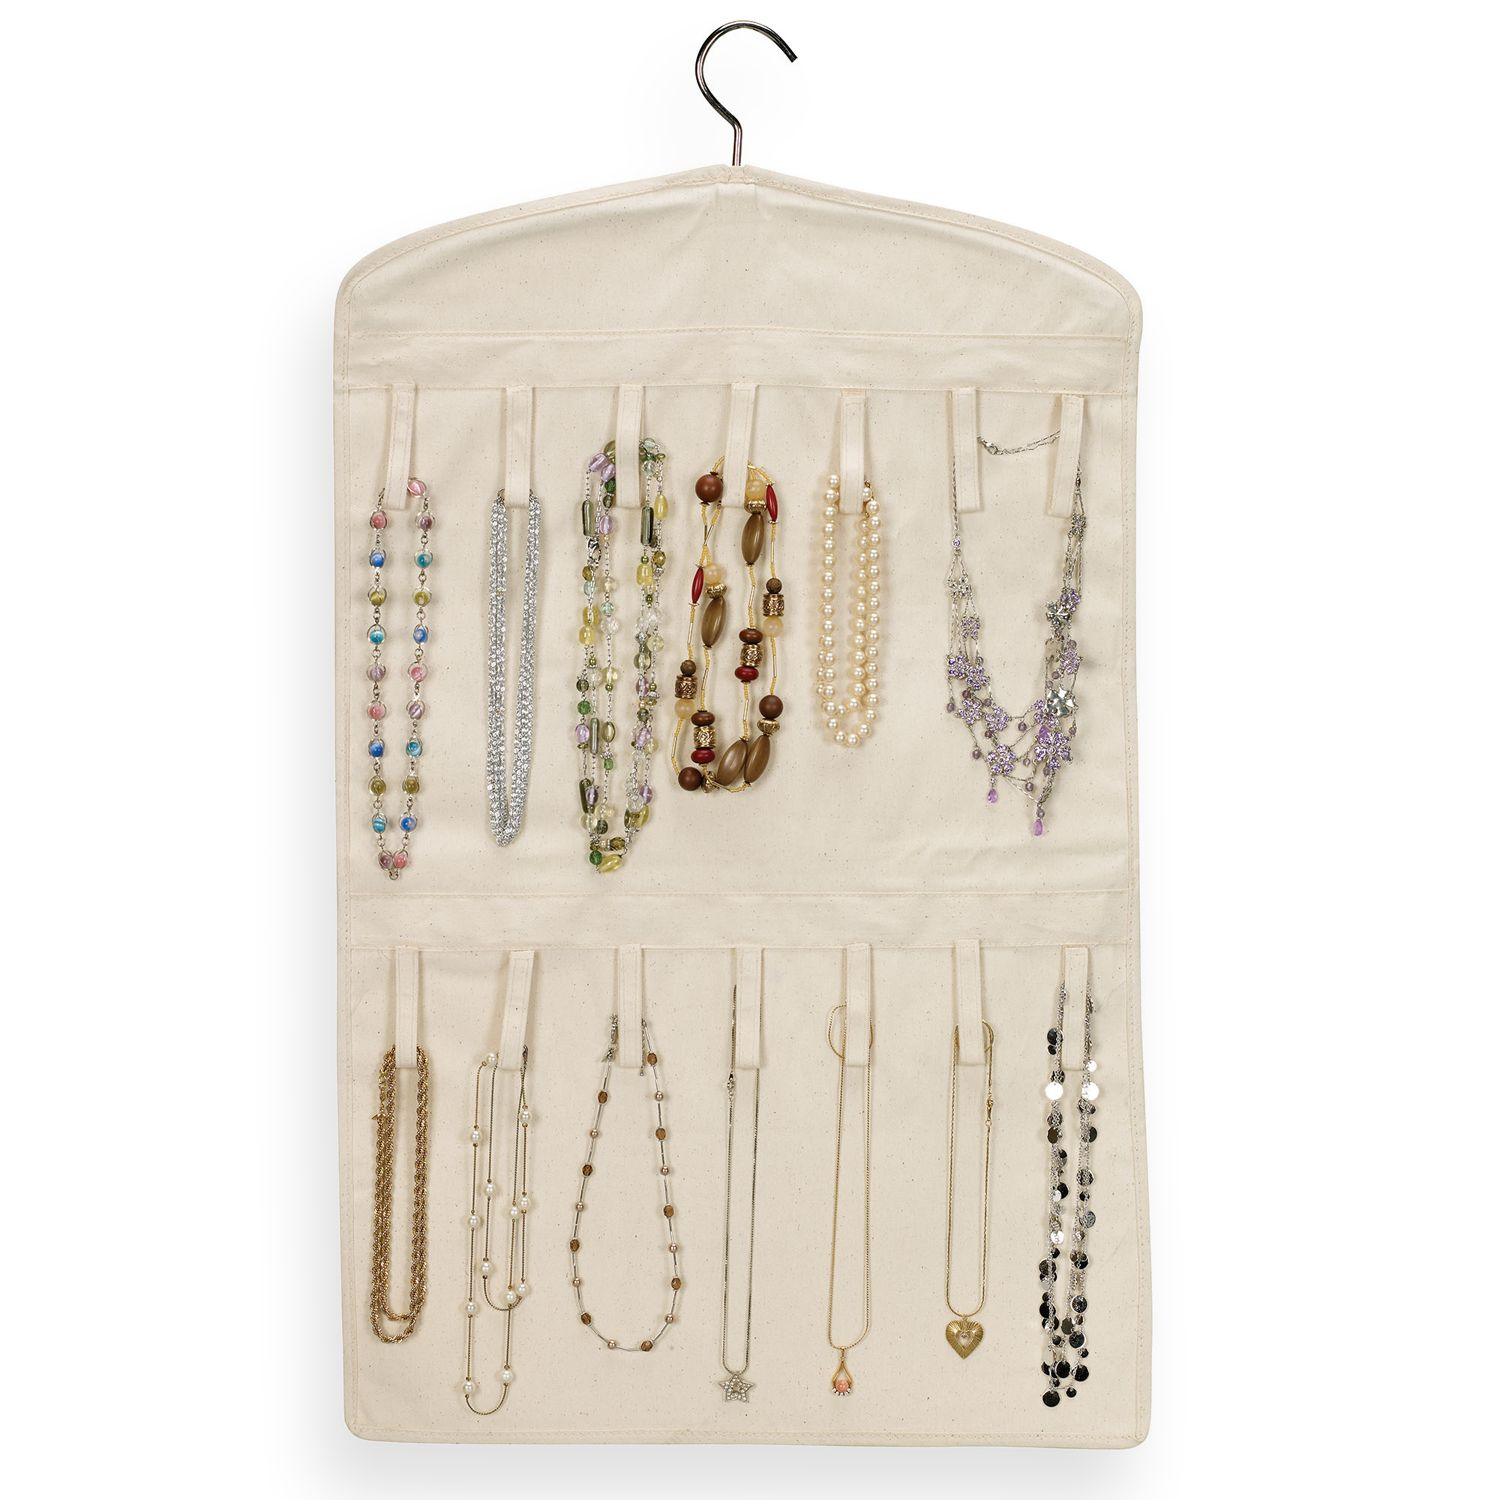 Hanging Jewelry Storage Storage Organization Storage Cleaning